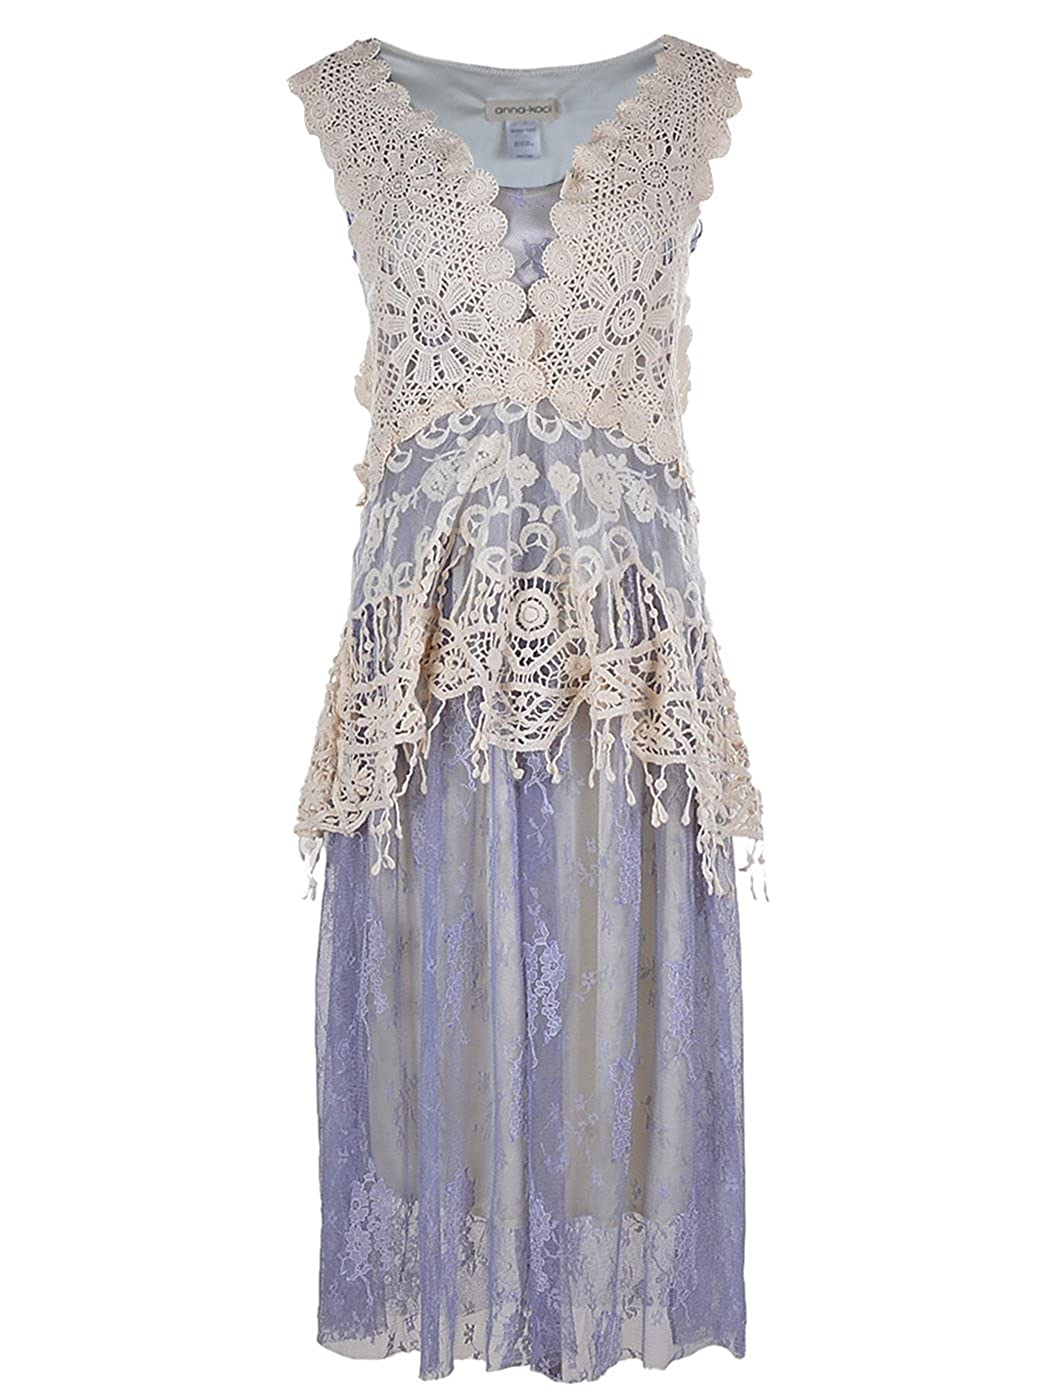 1920s Downton Abbey Dresses Anna-Kaci Womens Vintage Floral Embroidery Detail Lace Ruffle Gatsby 1920s Dress $47.99 AT vintagedancer.com